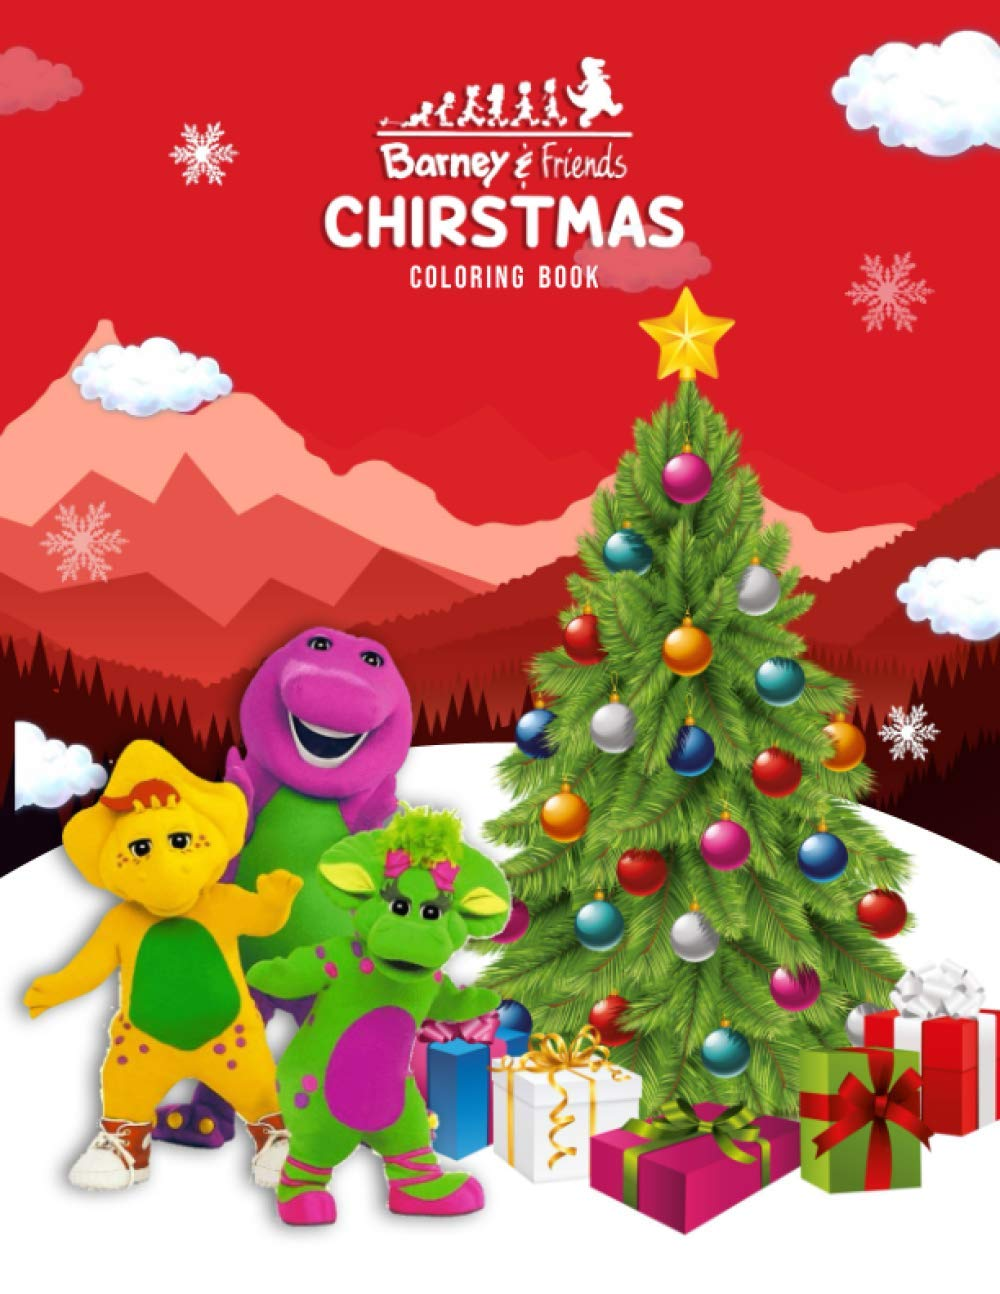 Barney And Friends Christmas Coloring Book 50 Coloring Pages About Cute Character Fun Stimulate The Creativity For Kids Barney Coloring Book Jerimya Ferraro 9798554035289 Amazon Com Books